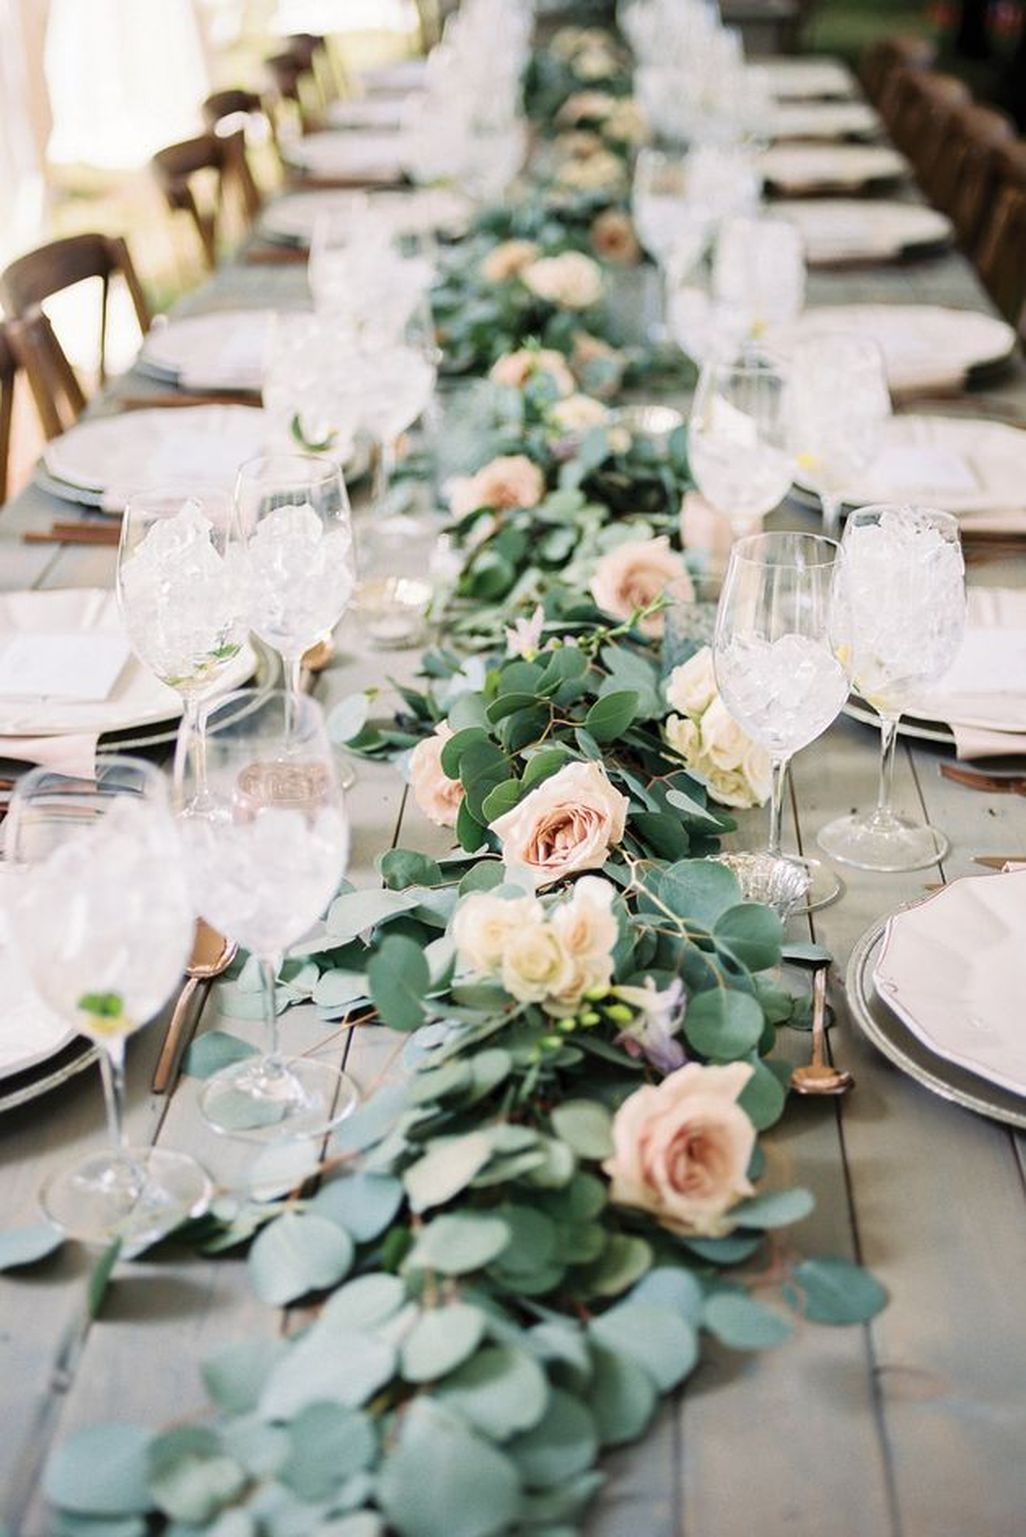 49 Floral Wedding Decorations Inspiration For Your Blooming Spring - Summer-decorating-ideas-with-flowers-for-your-loft